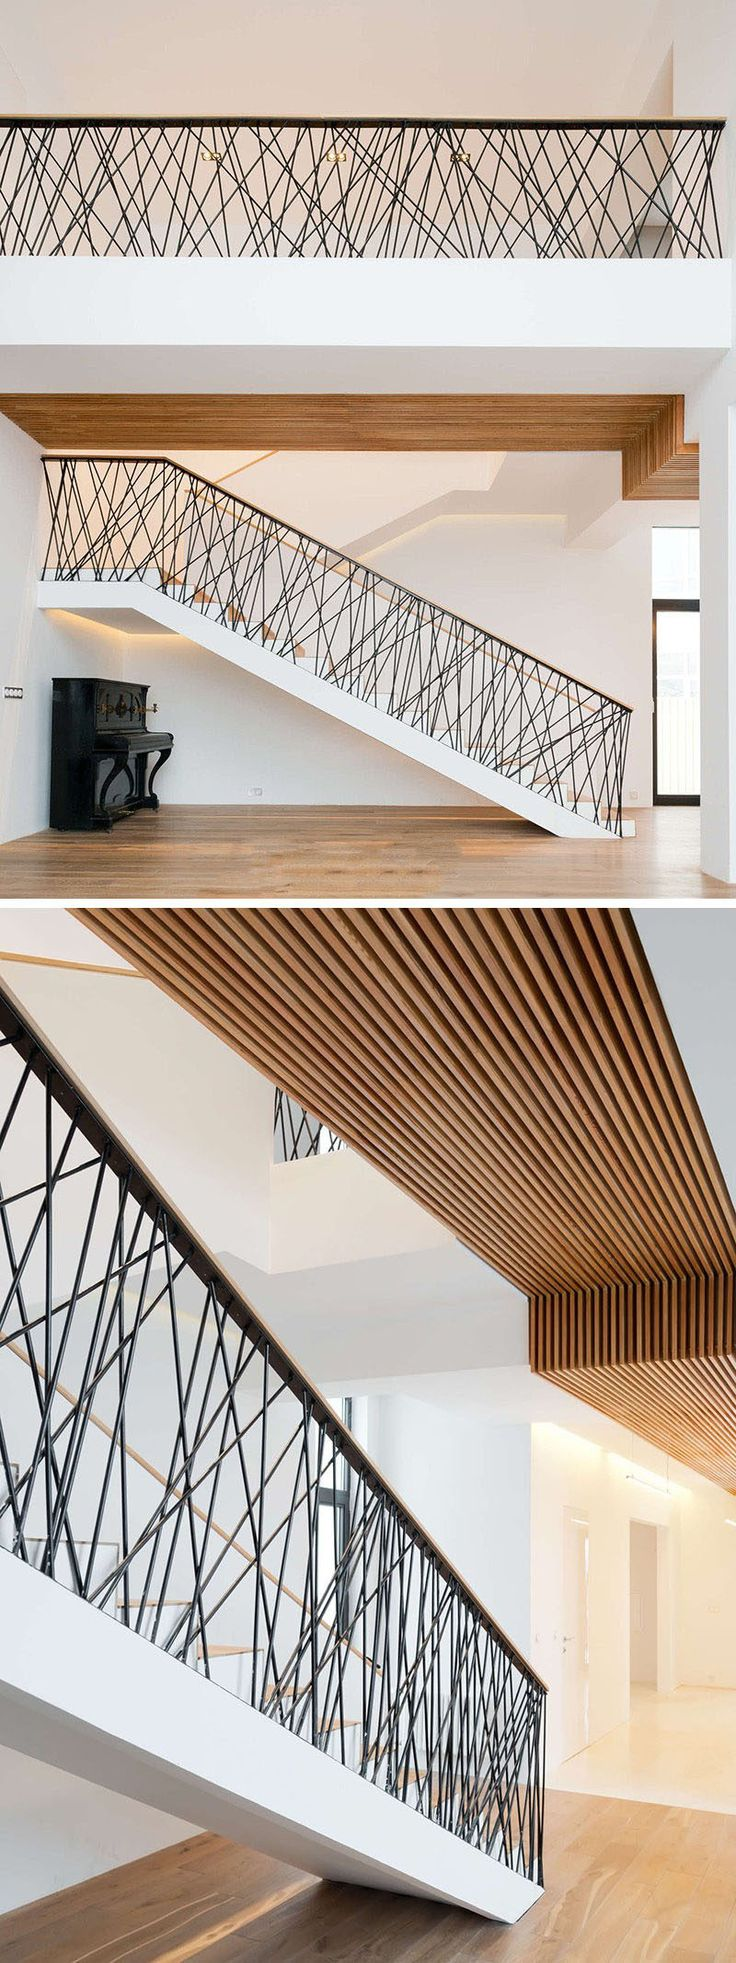 25 Best Ideas About Staircase Railings On Pinterest Staircase Spindles In